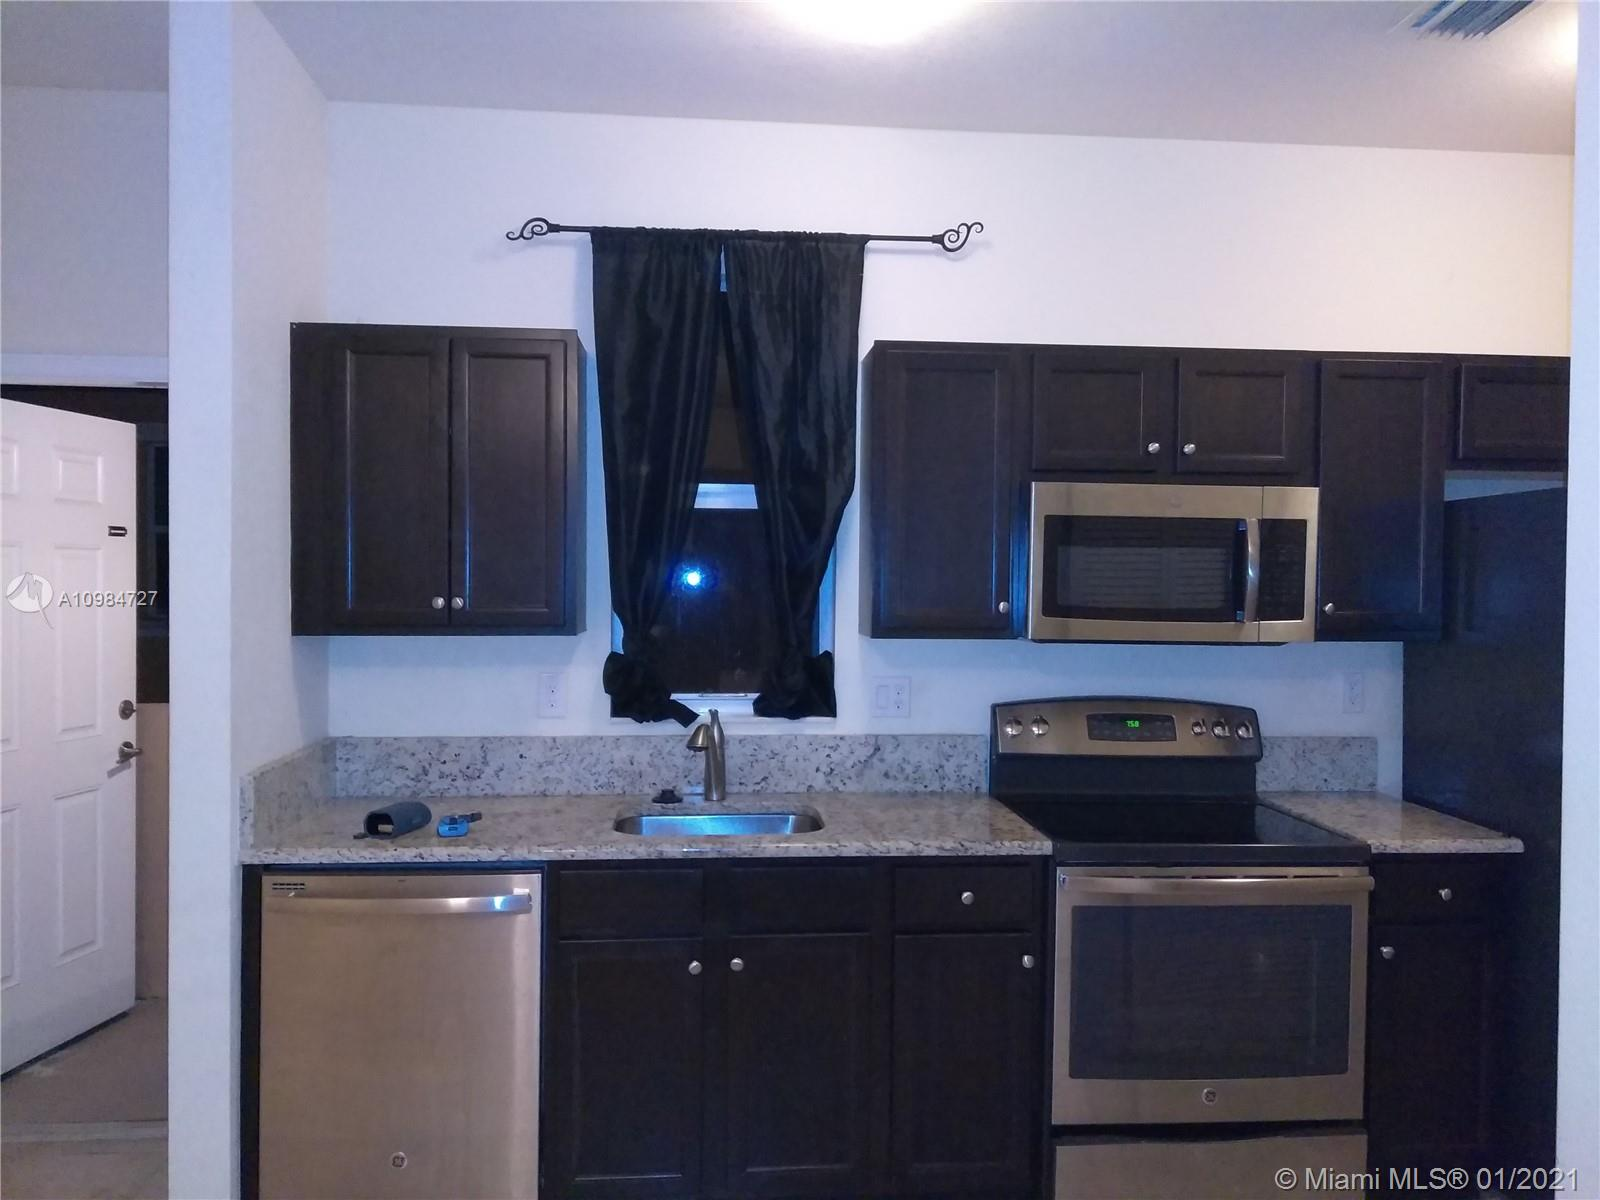 9505 SW 171st Path # 2, Miami, Florida 33196, 1 Bedroom Bedrooms, ,1 BathroomBathrooms,Residential Lease,For Rent,9505 SW 171st Path # 2,A10984727